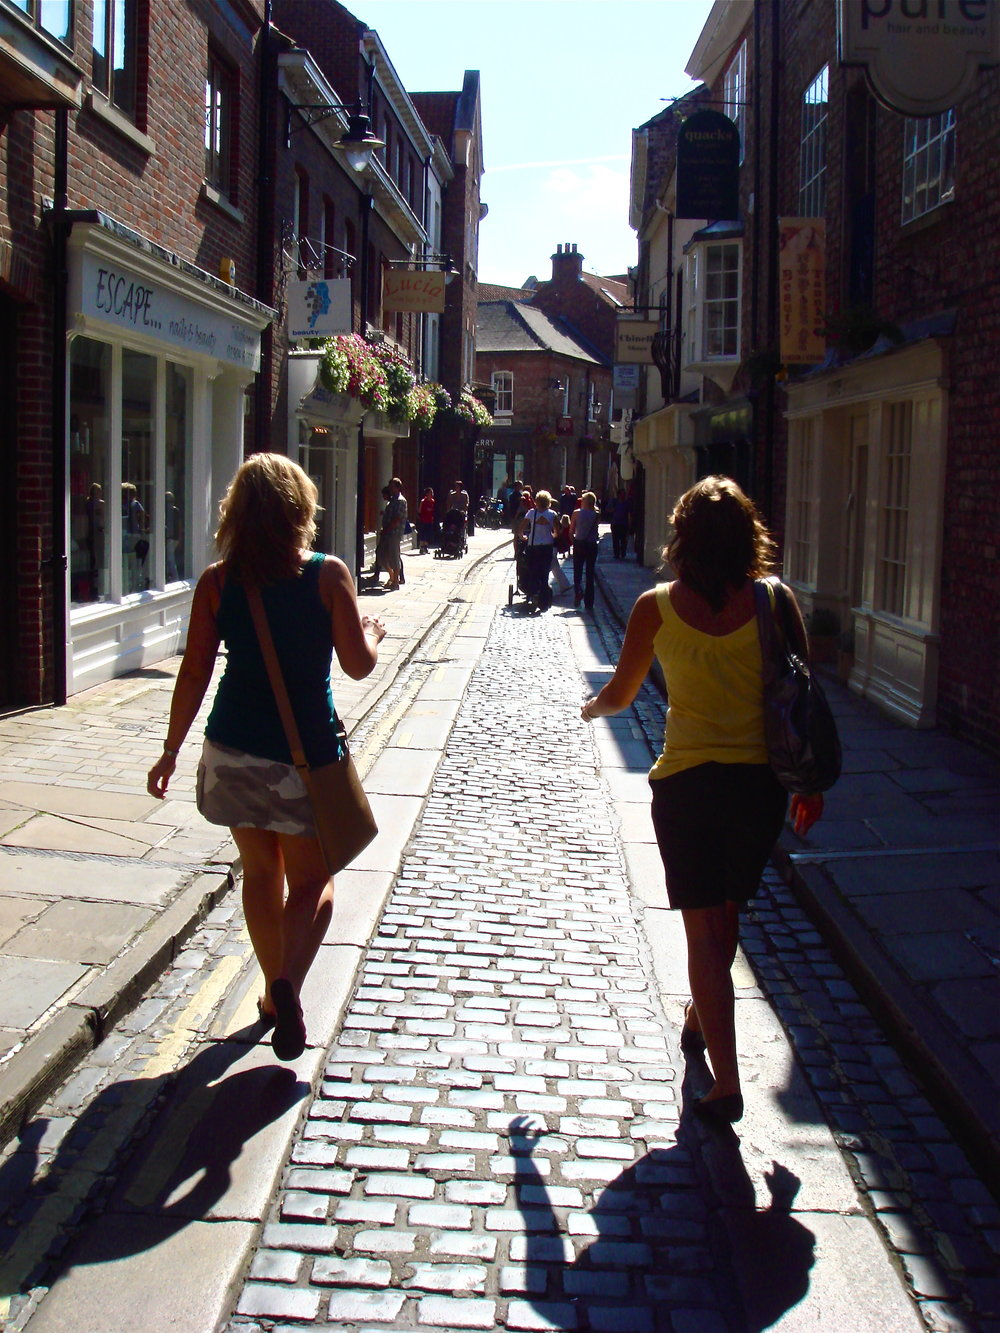 Must-Visit Destination: The Picturesque City of York in England